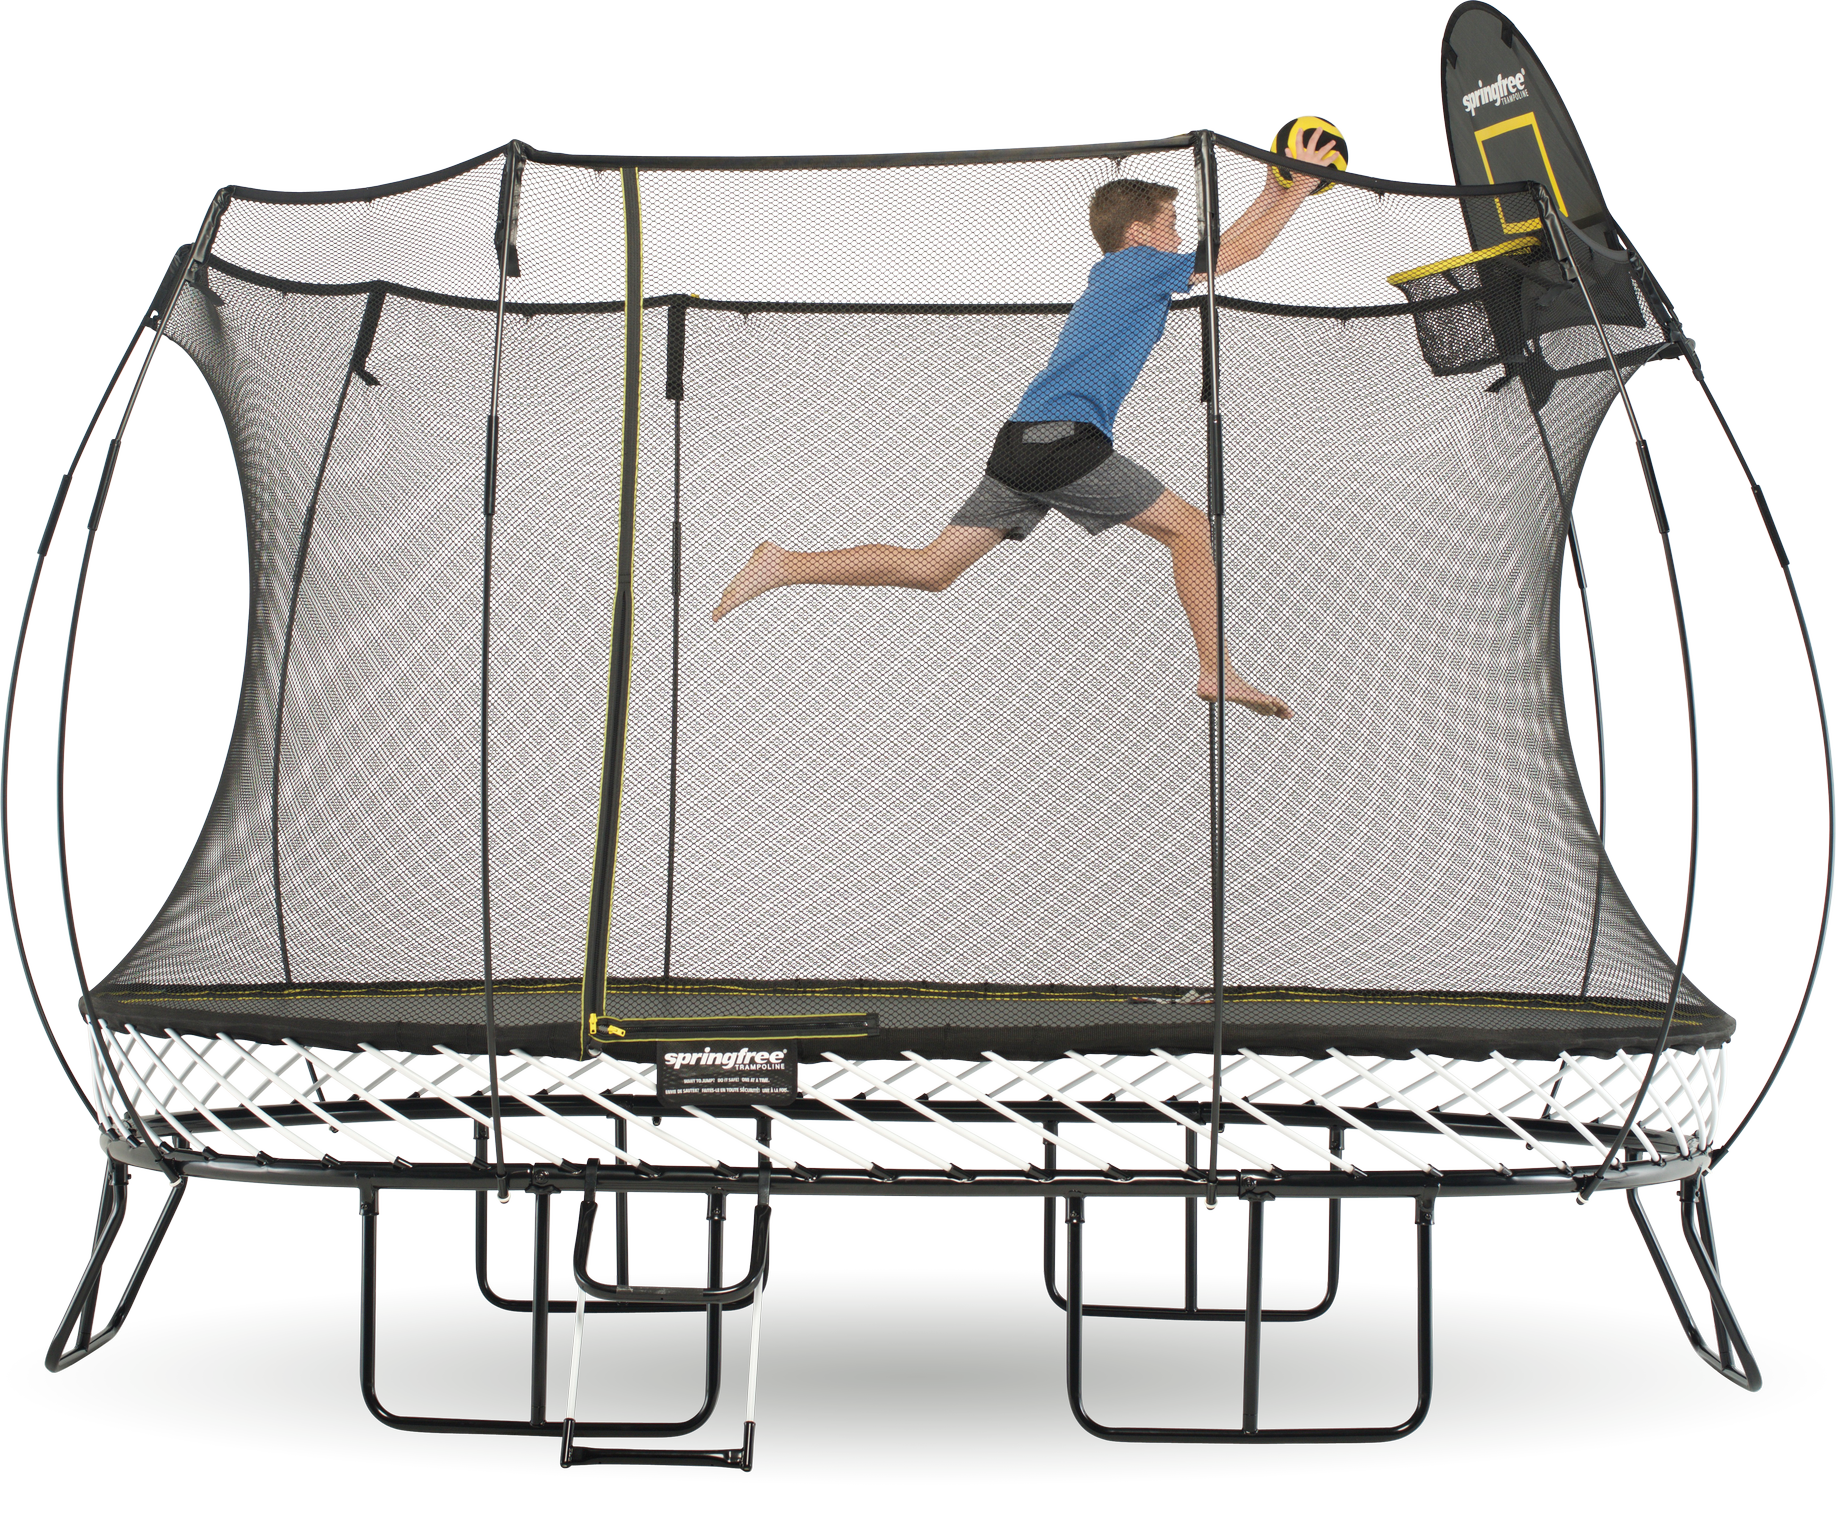 Springs Trampoline Park Waiver: Springfree Trampoline Backyard Summer Refresh Giveaway